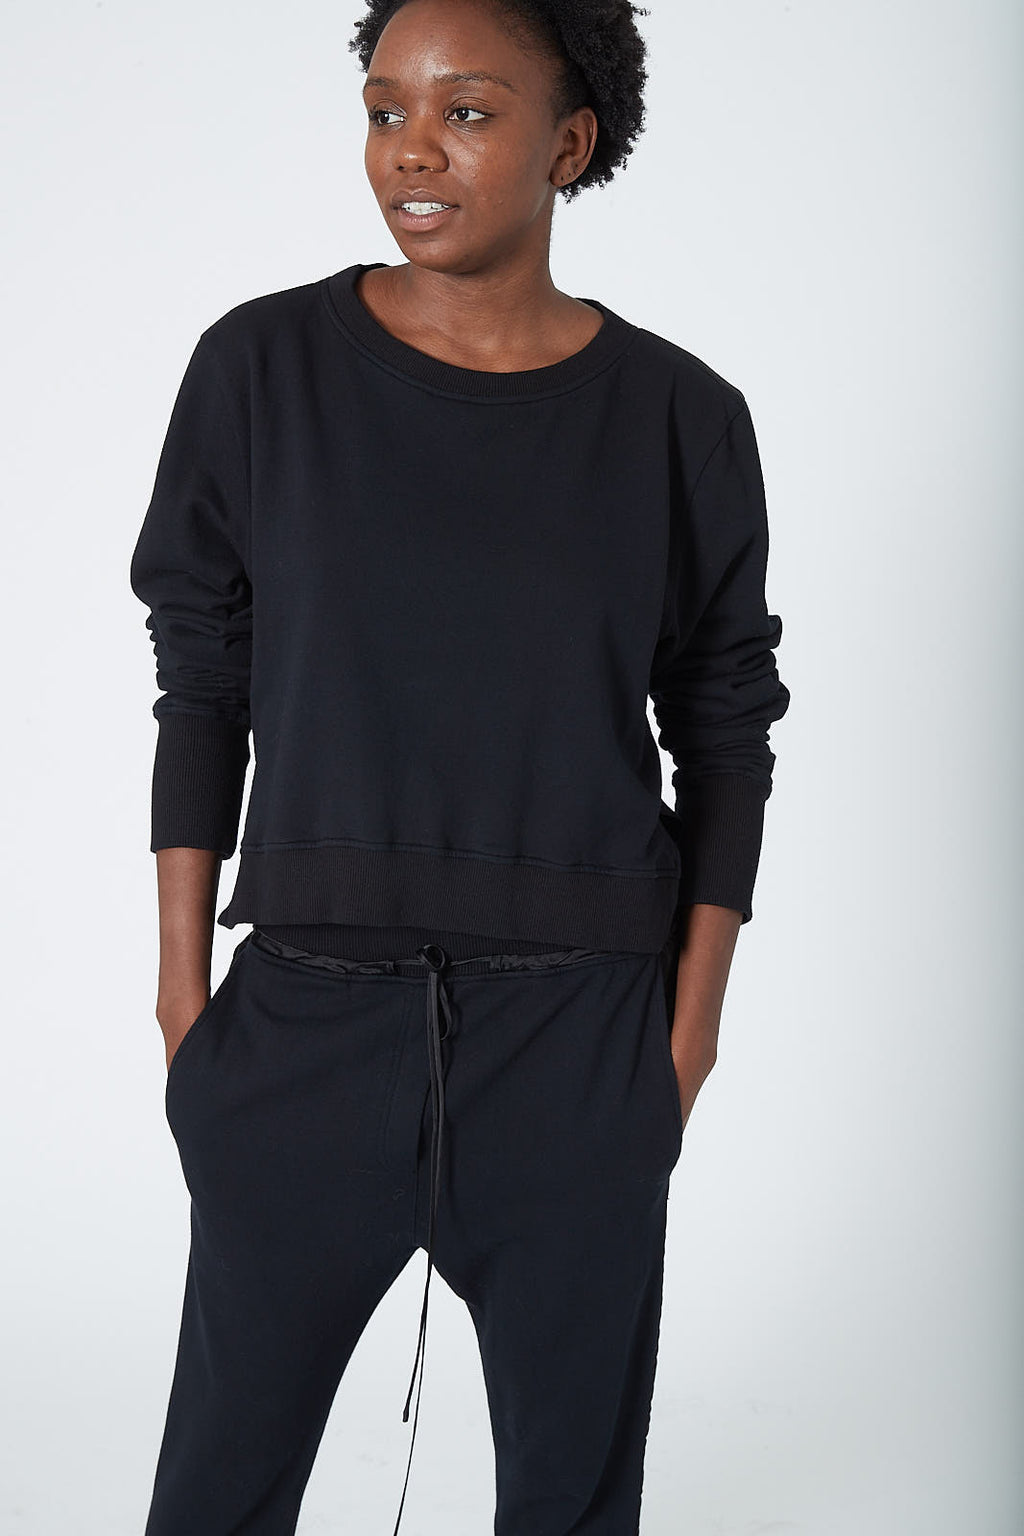 KES Draped Back Pullover Combo - Black